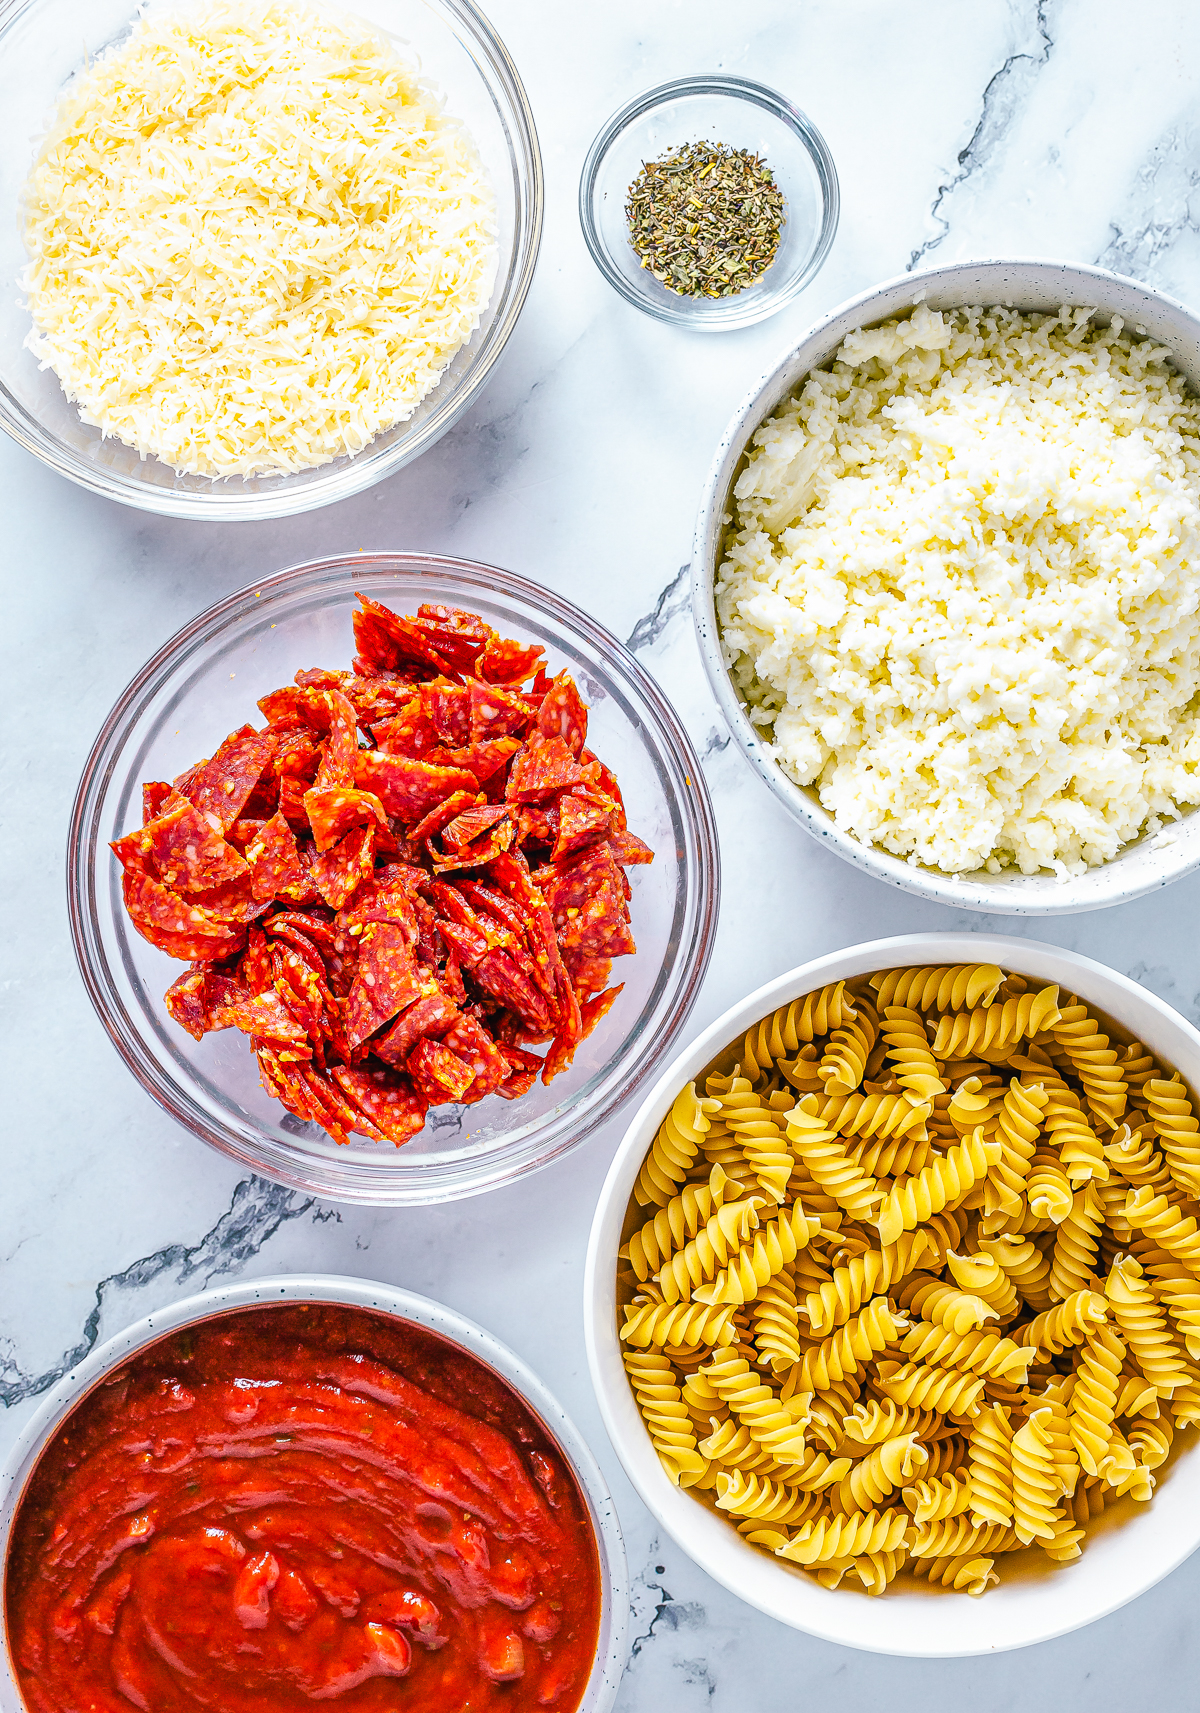 Ingredients needed to make a Pizza Pasta Bake.